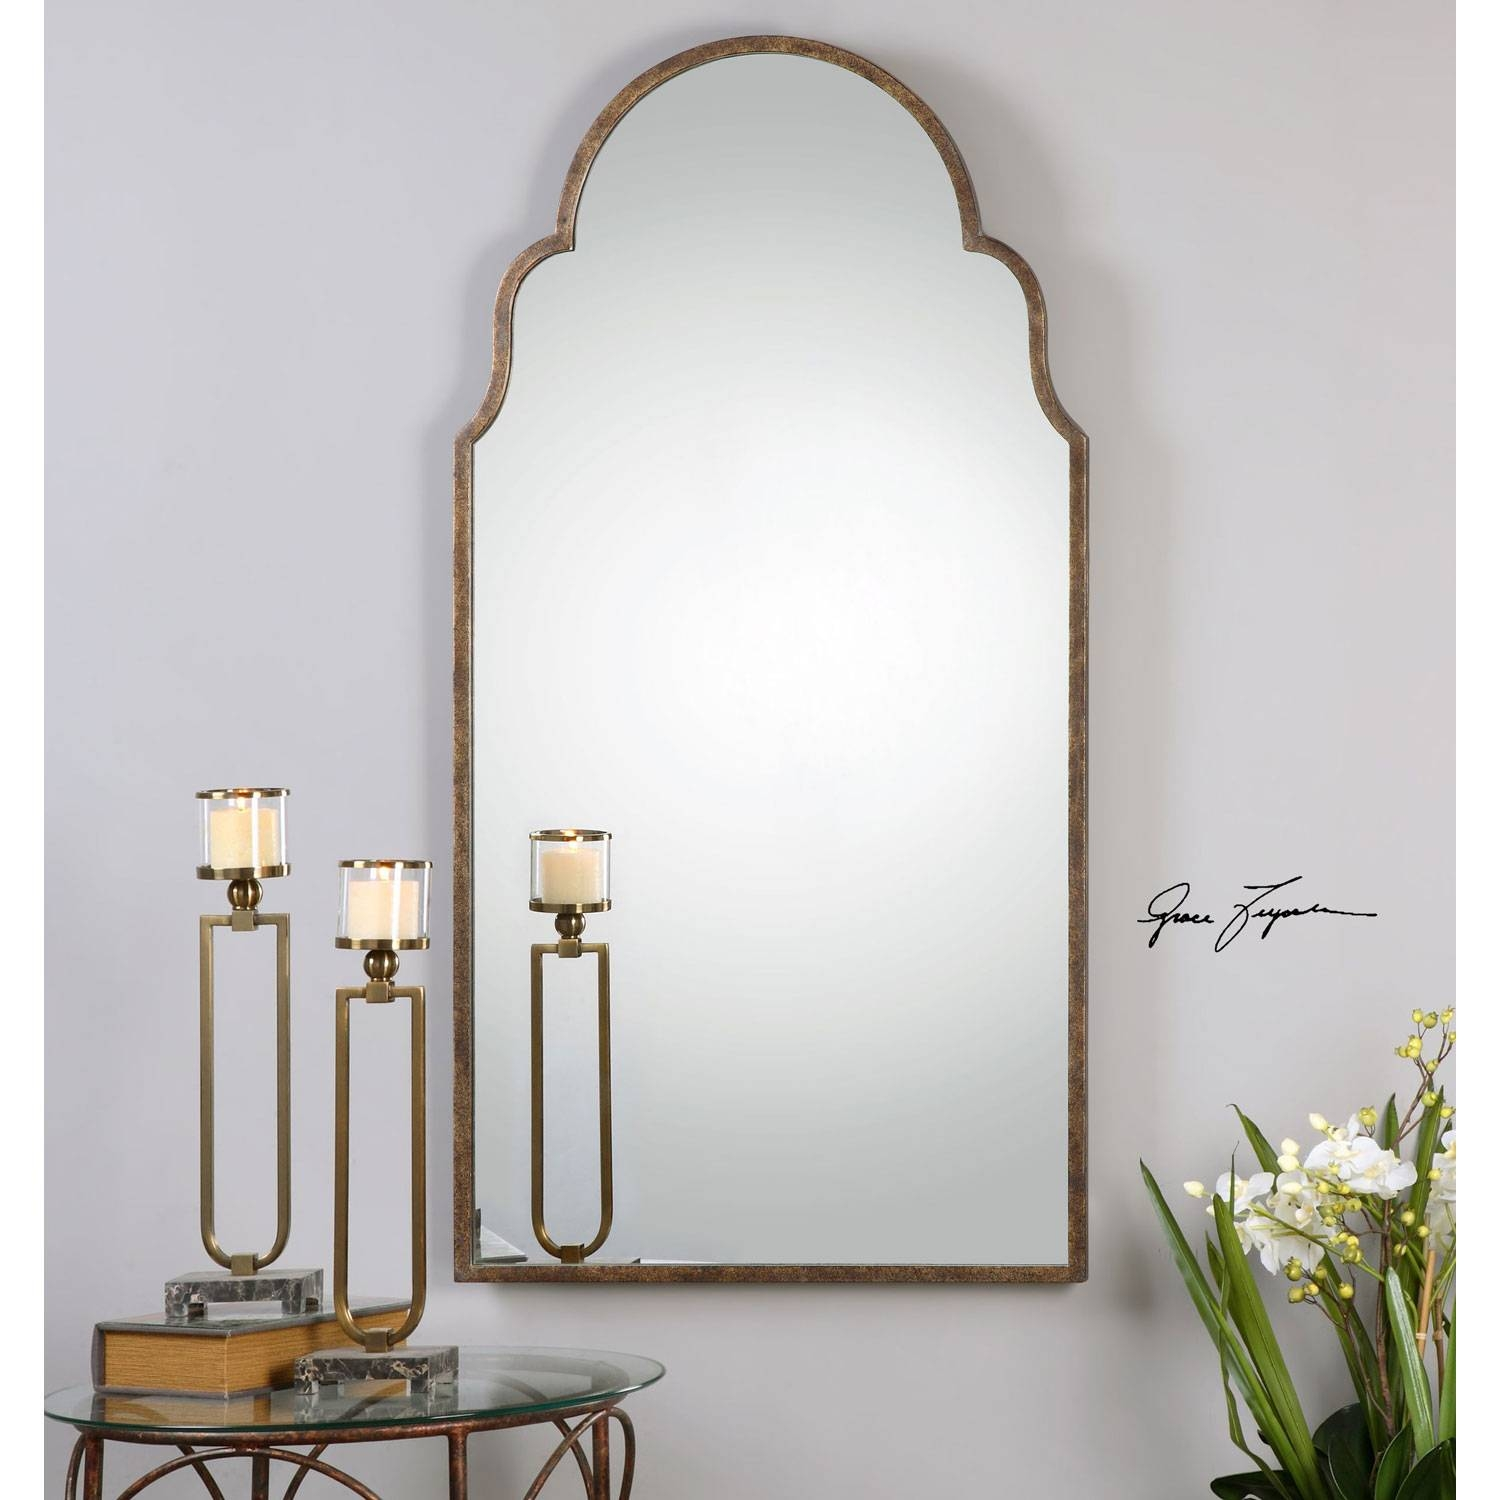 Brayden Rust Bronze Arch Mirror Uttermost Wall Mirror Mirrors Home Inside Frameless Arched Mirrors (View 4 of 25)